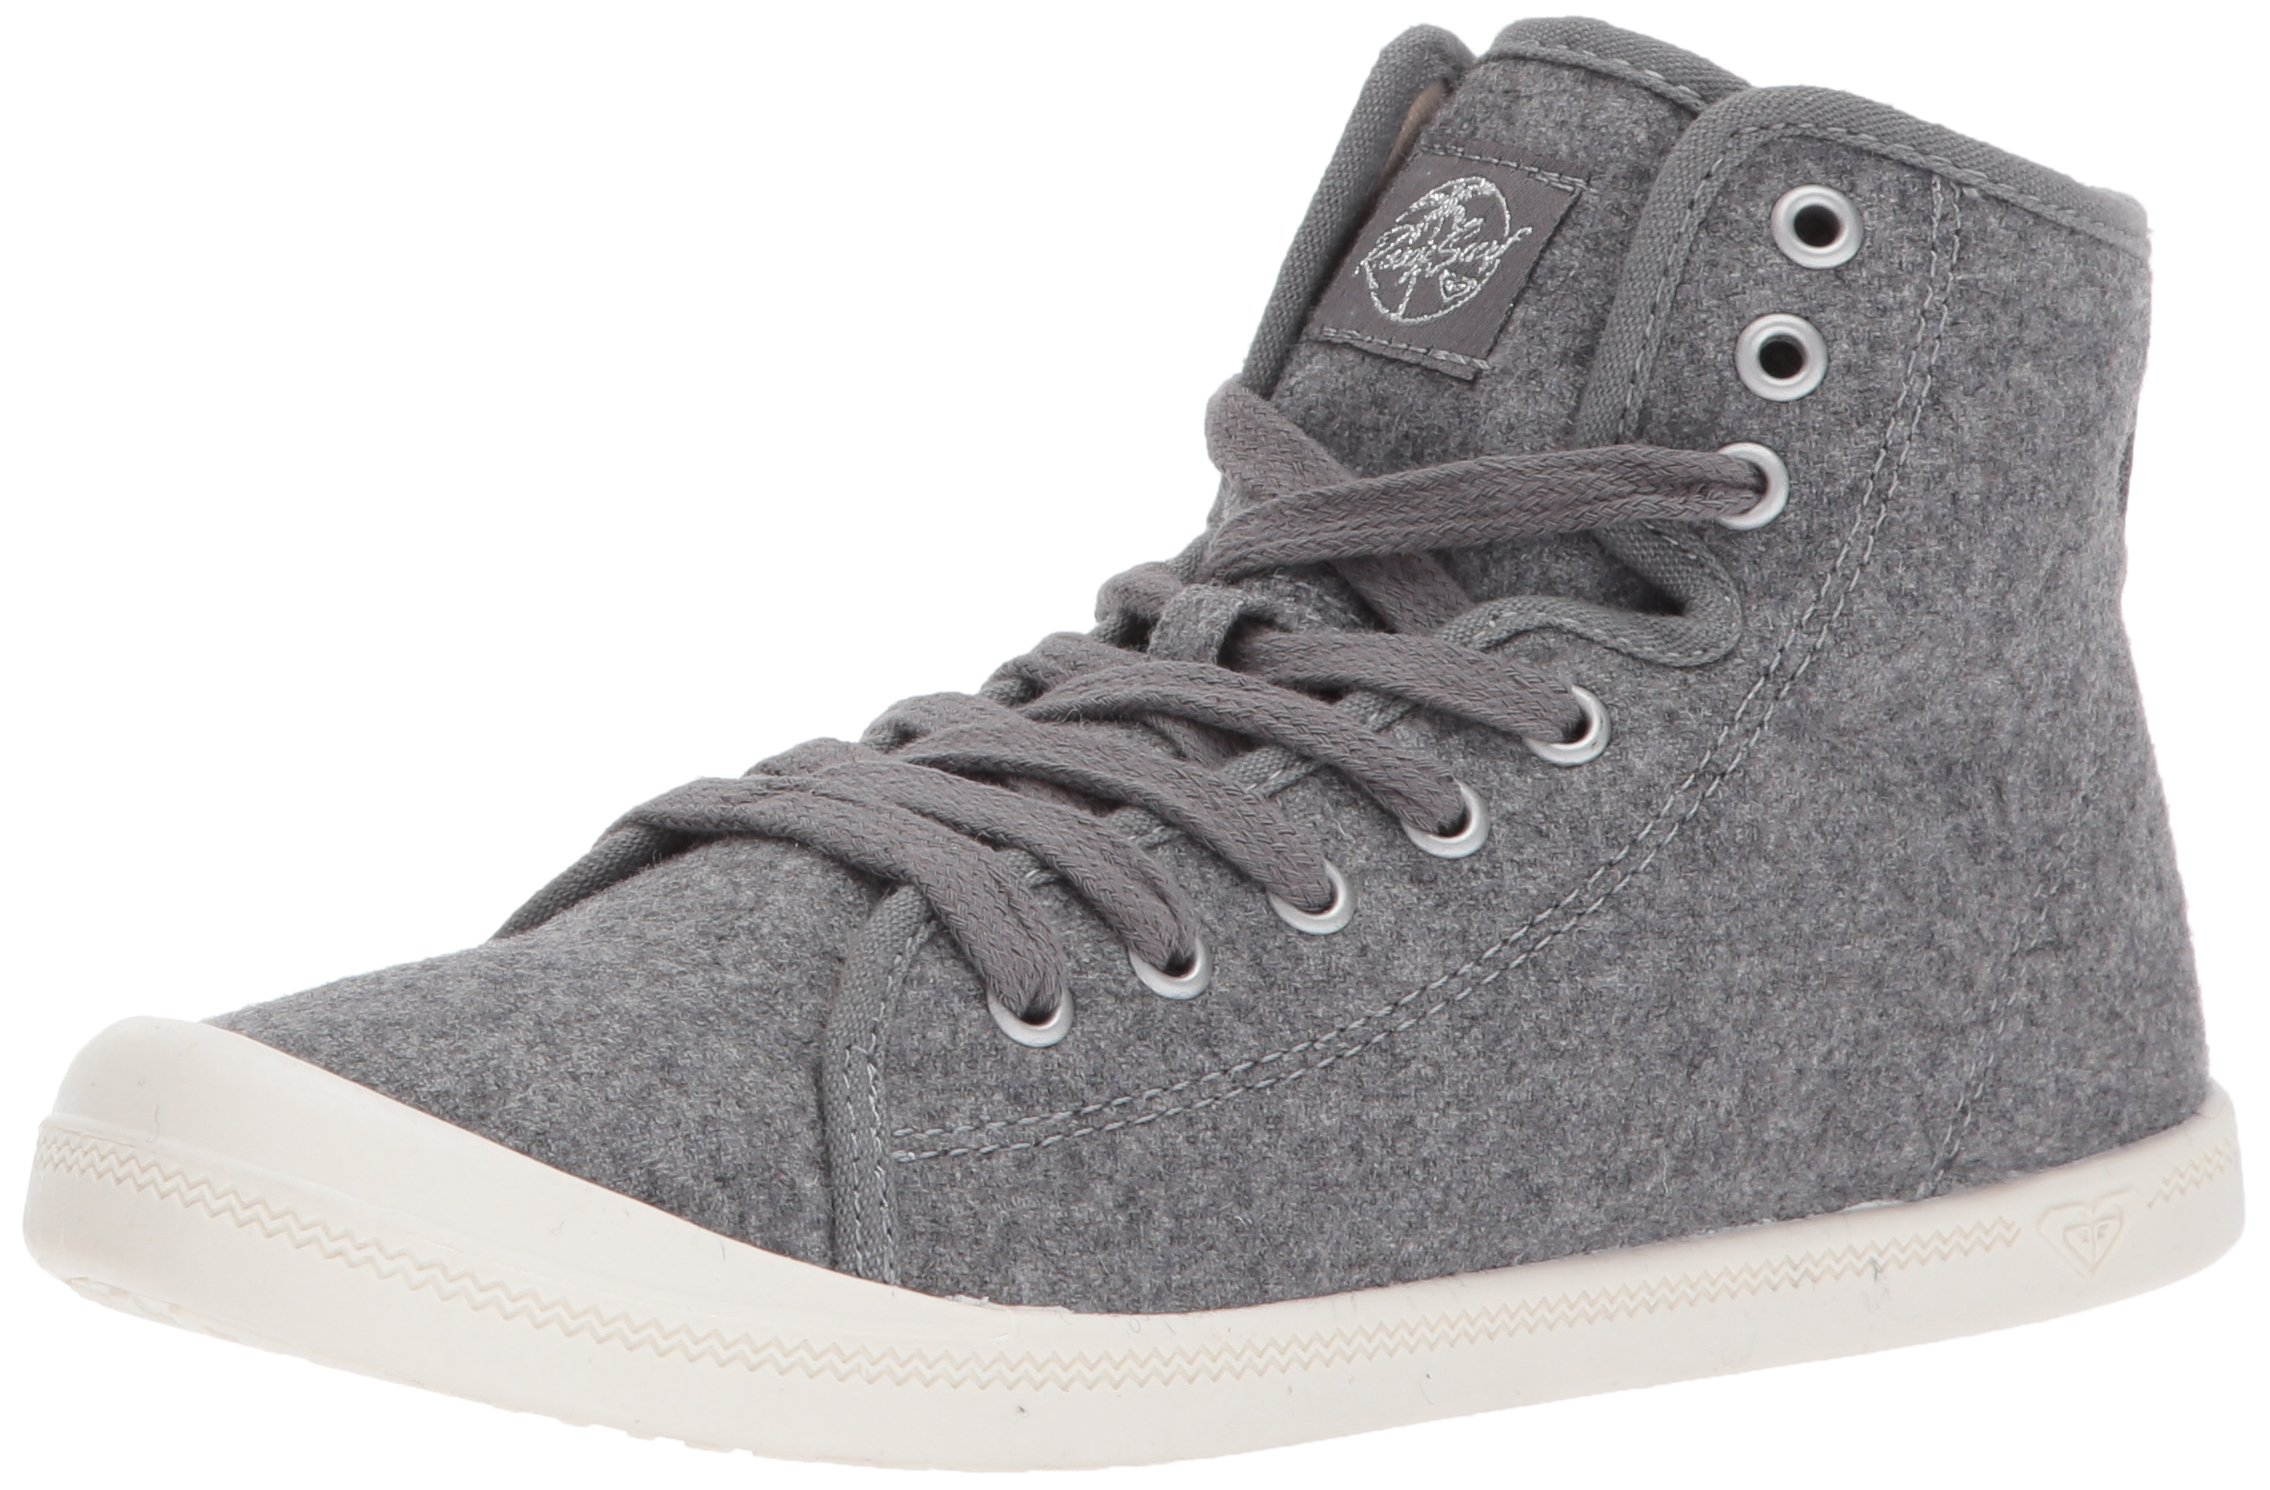 Roxy Women's Rizzo Ii Mid Top Shoe Fashion Sneaker, Grey Heather, 8 M US